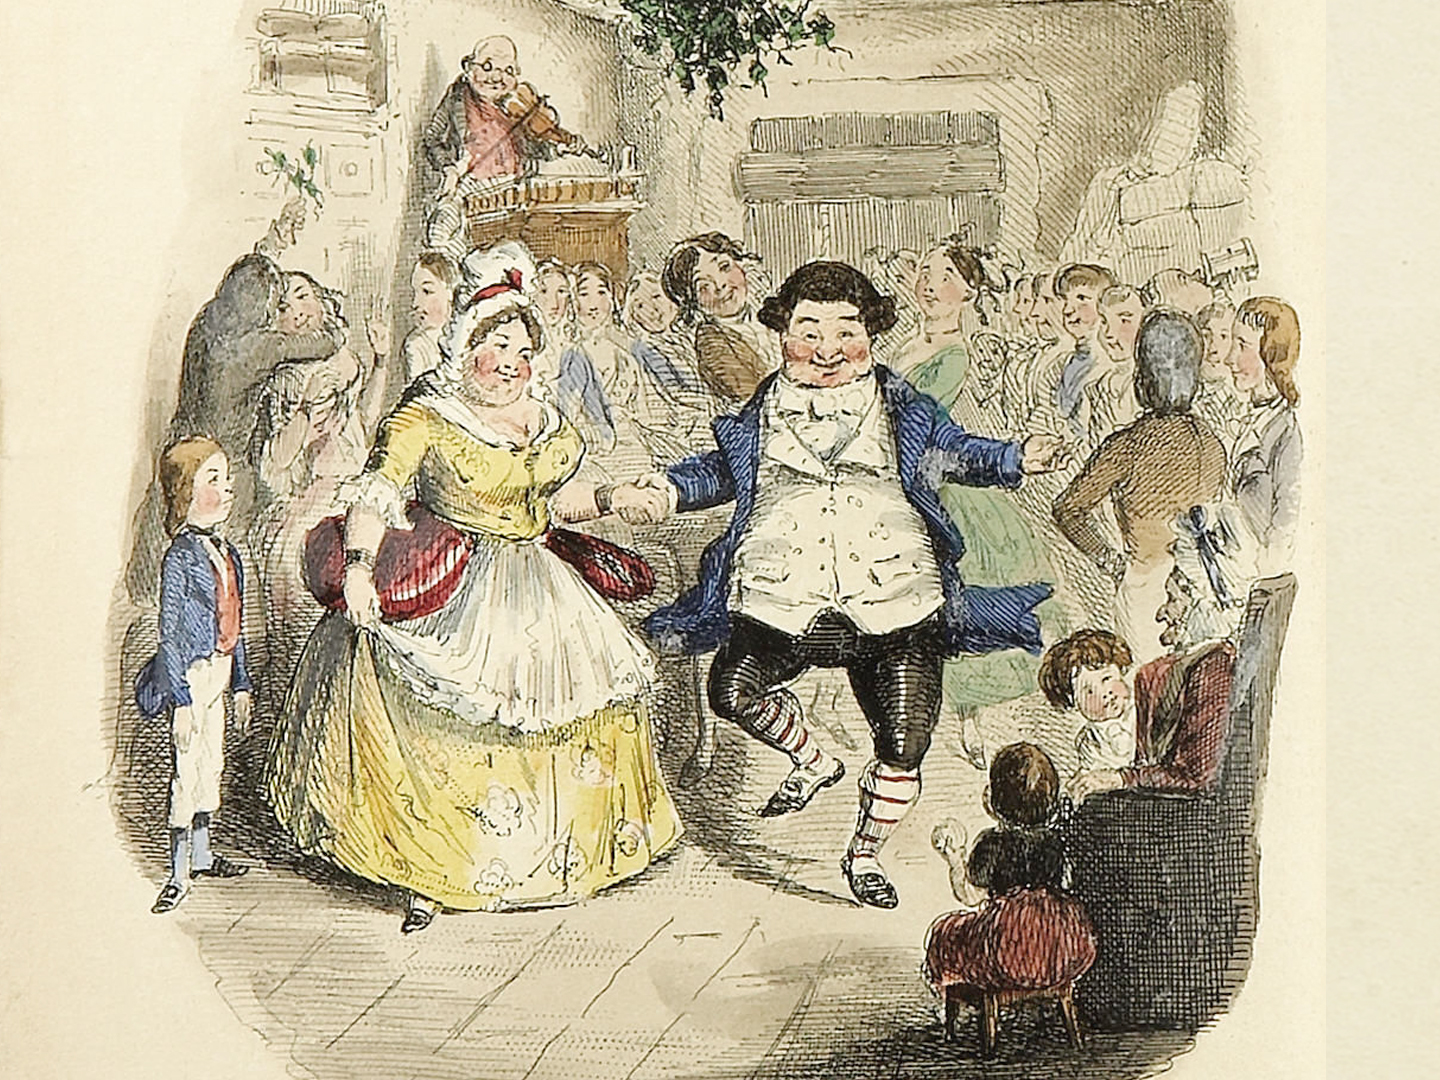 Illustration of a jolly, rosy-cheeked Victorian couple who kick up their heels as they dance at a Christmas party.